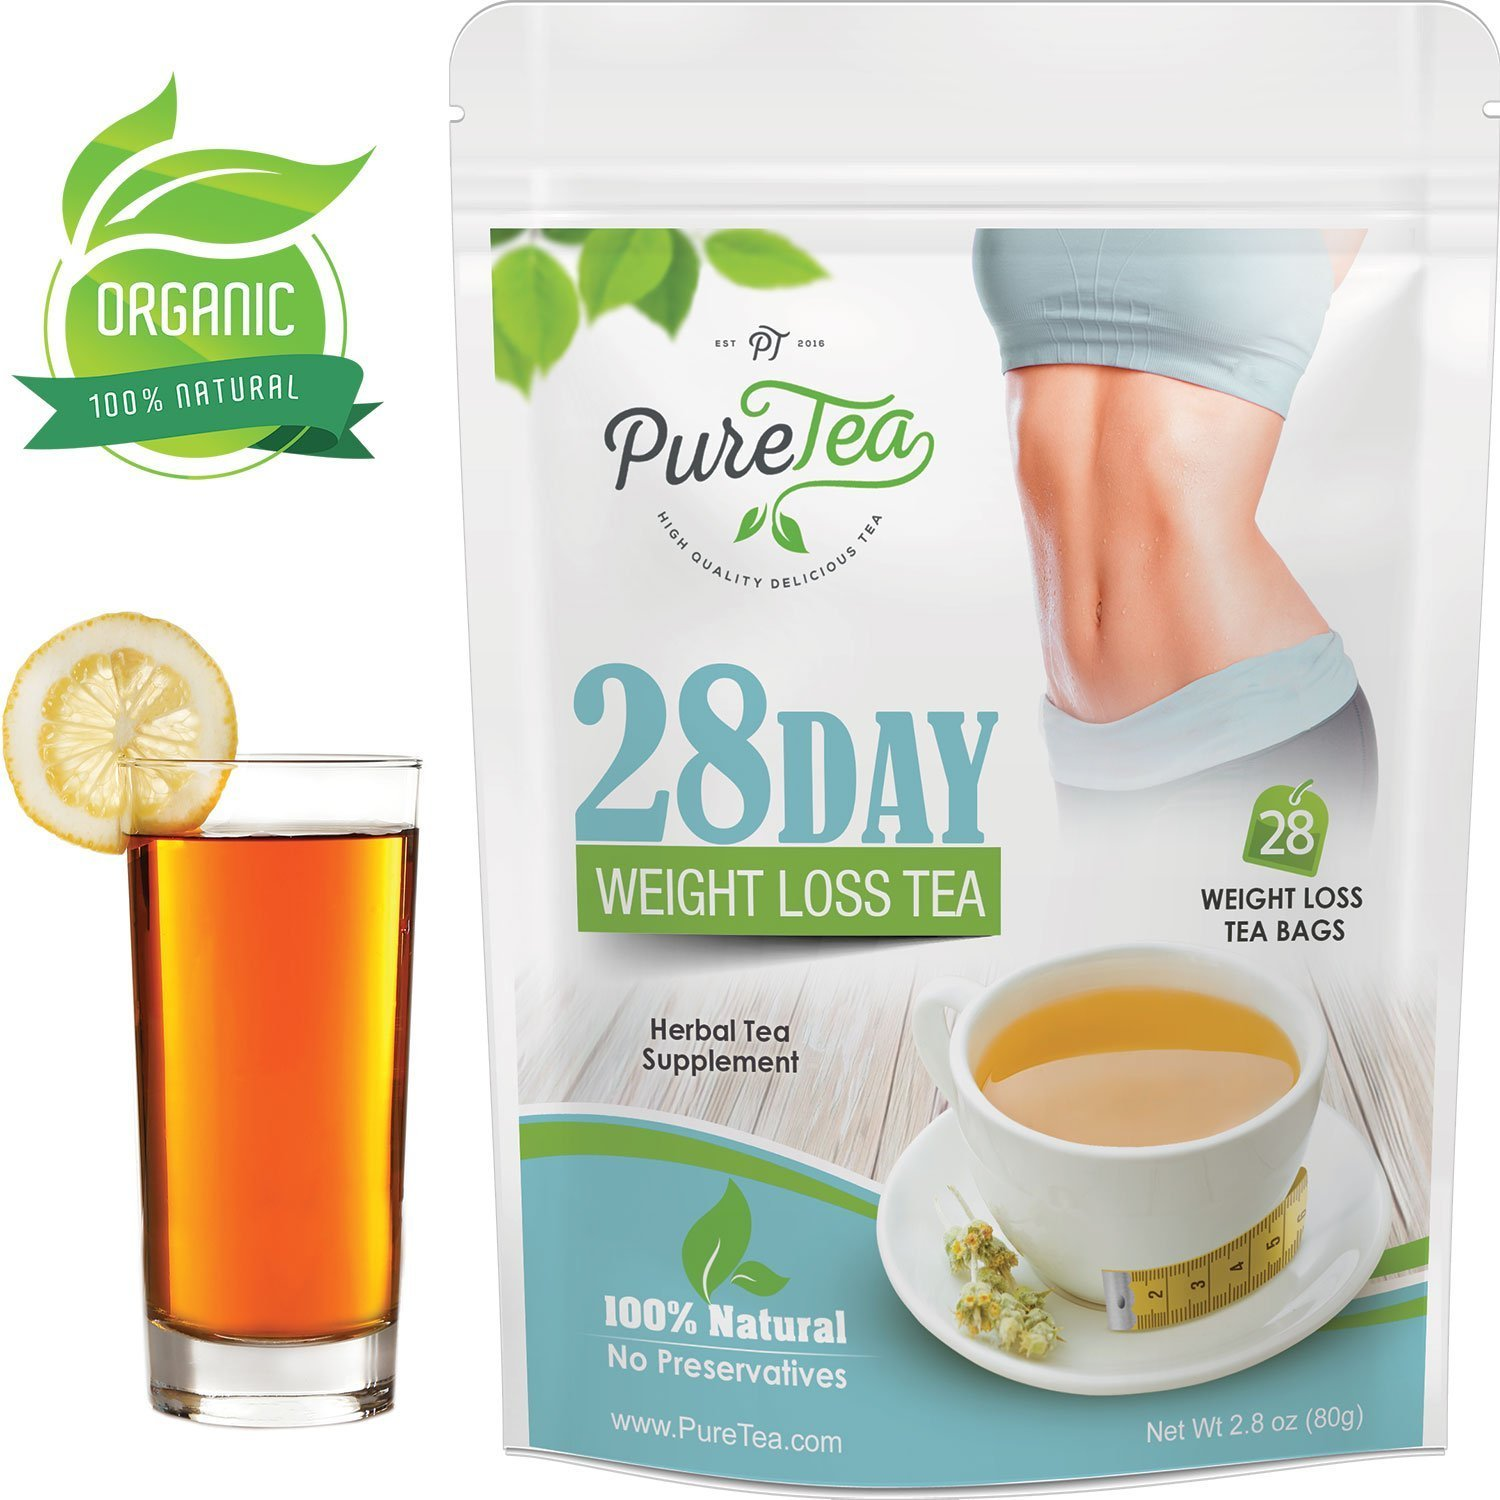 Amazon.com: PureTea Skinny Tea, Gentle Diet Detox Tea